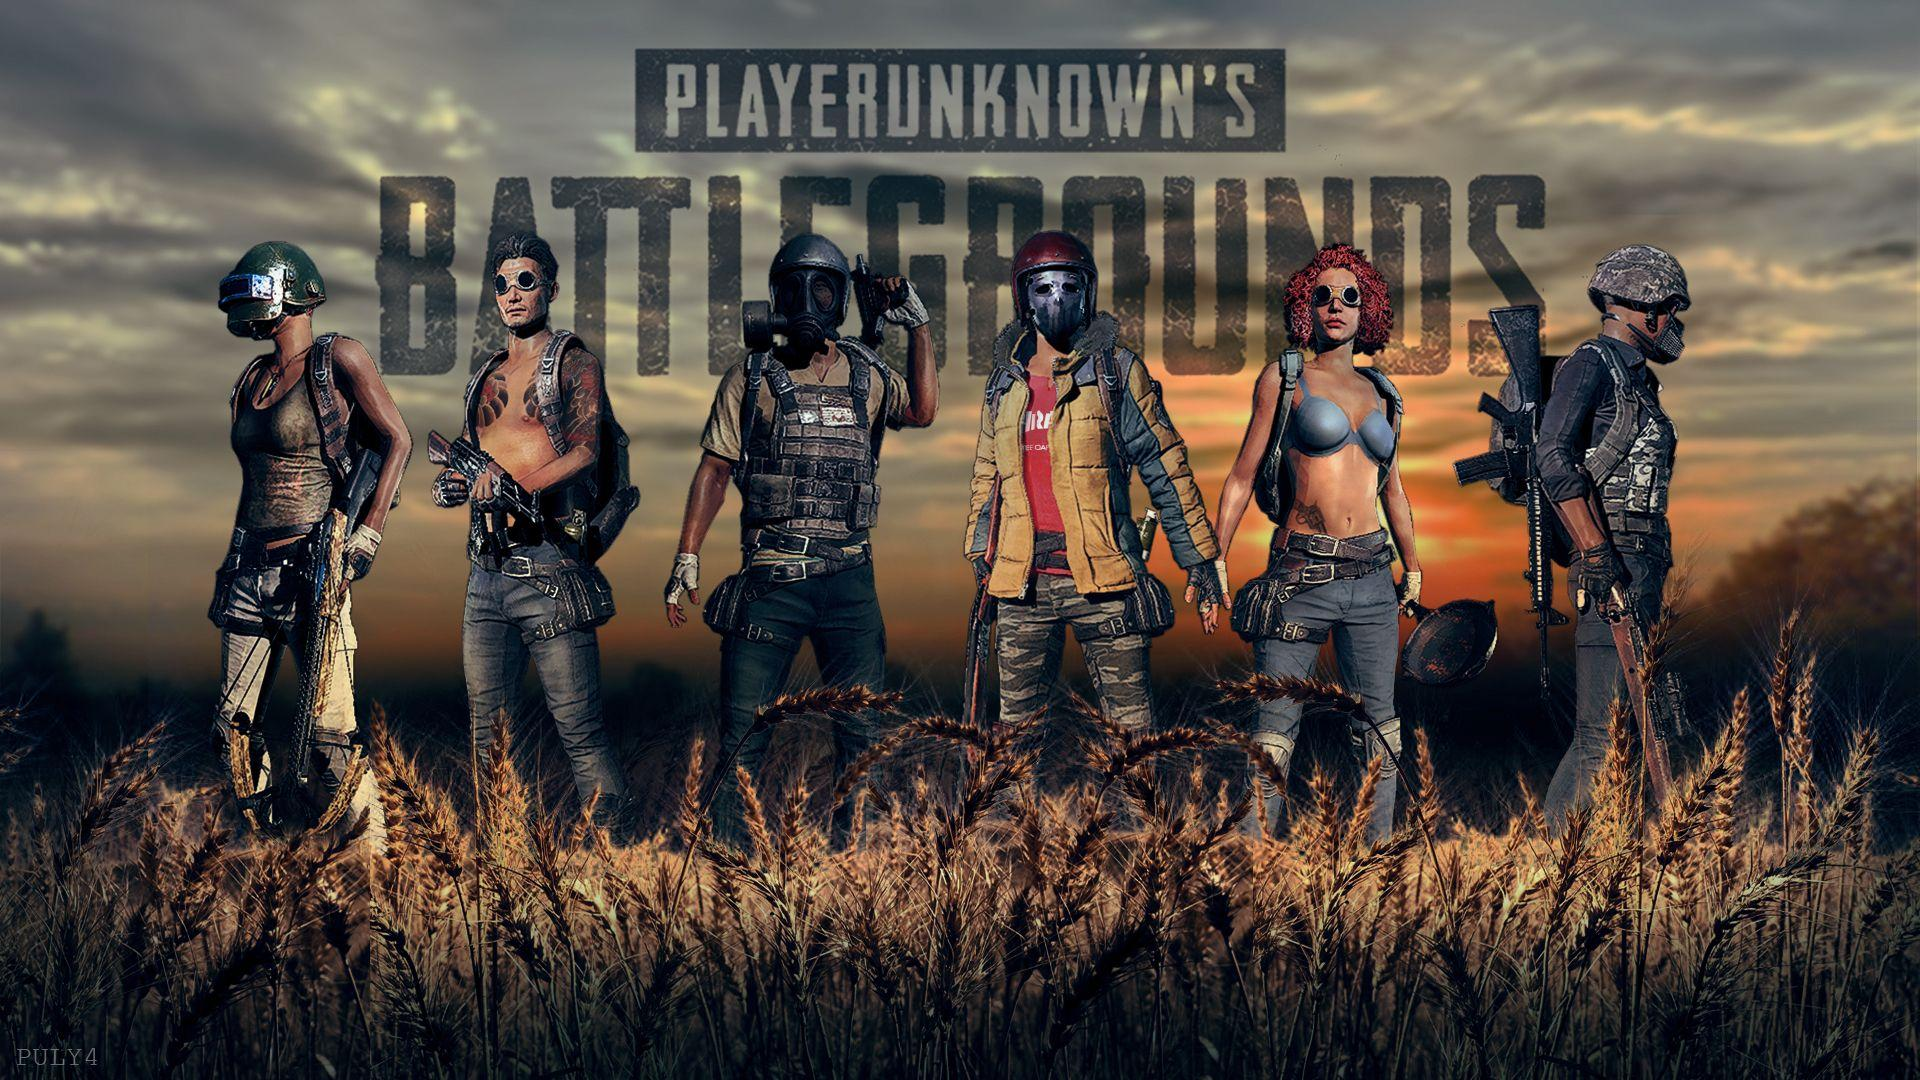 Download Pubg Wallpaper Puter